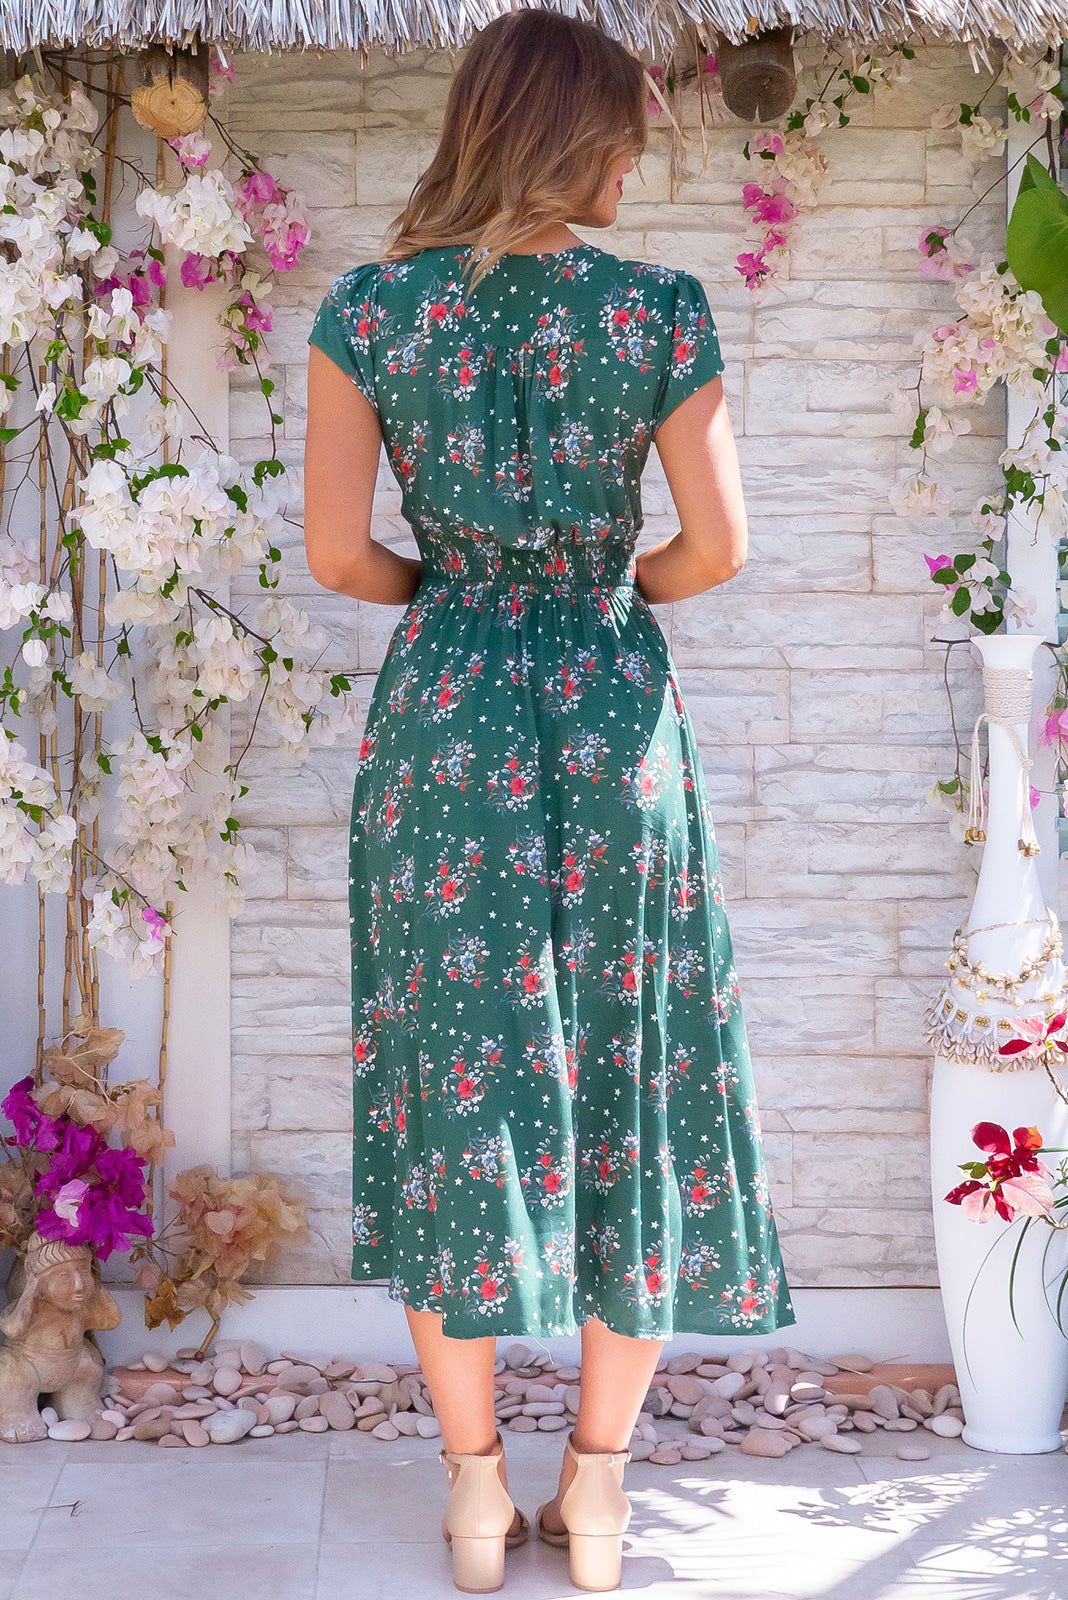 Lizzie Star Green Dress retro inspired midi dress with star and floral print, made from rayon, features side pockets, cap sleeves, v neck.